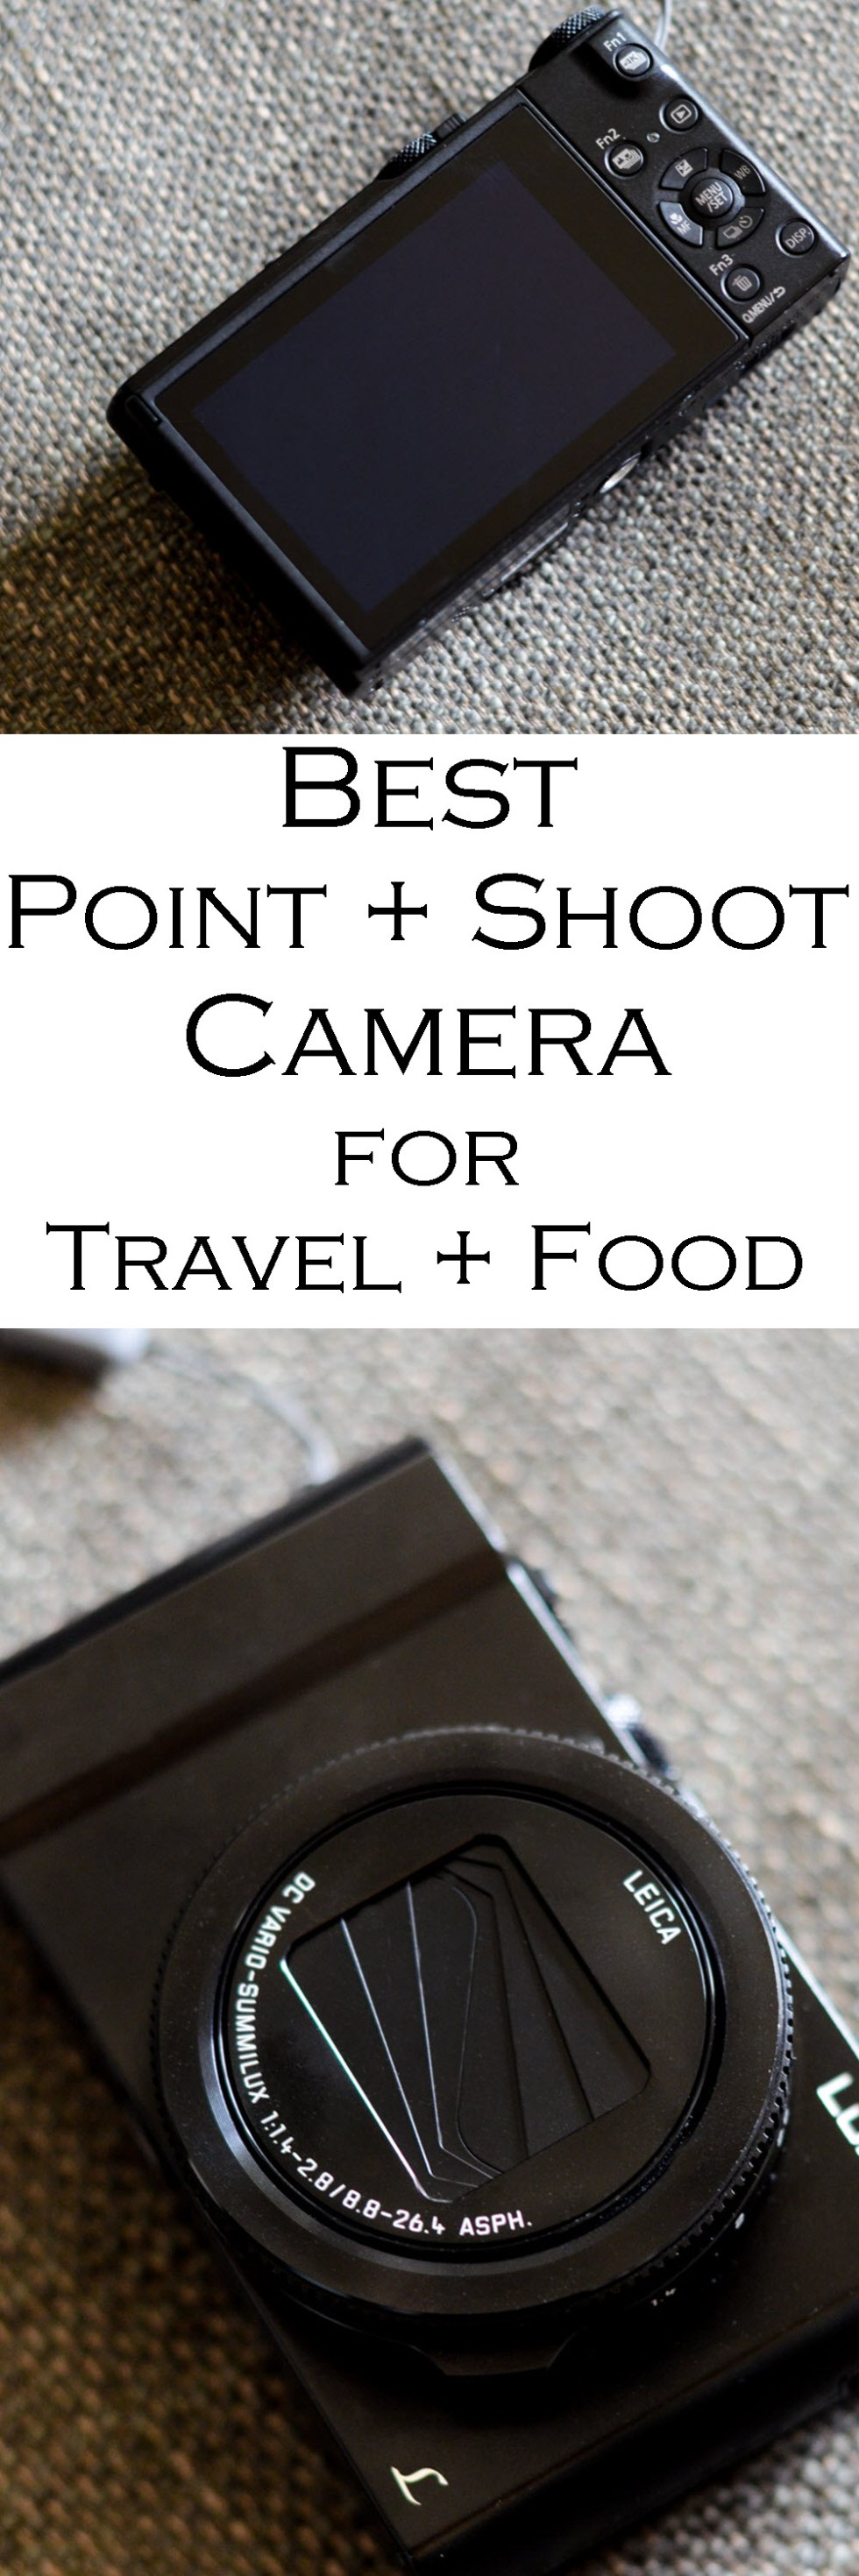 Best Point + Shoot Camera for Food, Travel, and Everything On the Go, including post-shot focusing and 4K video